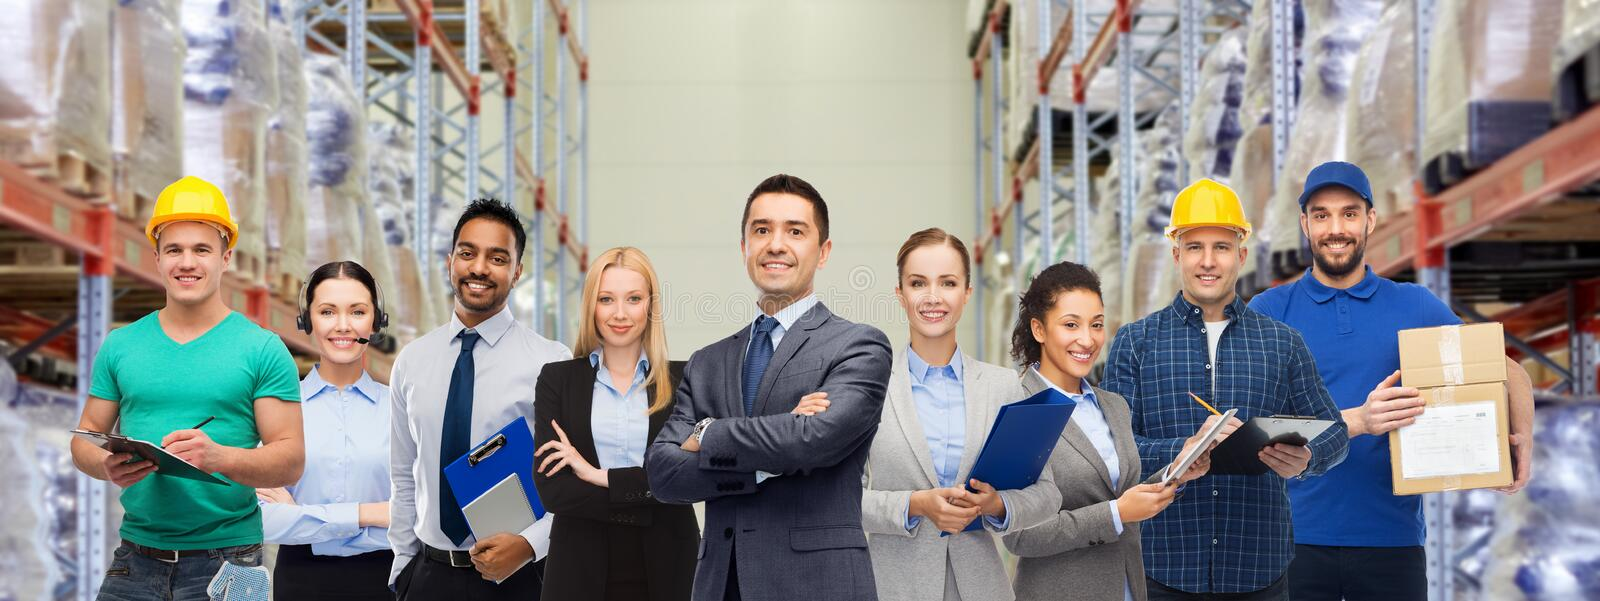 Group of business people and warehouse workers stock photo